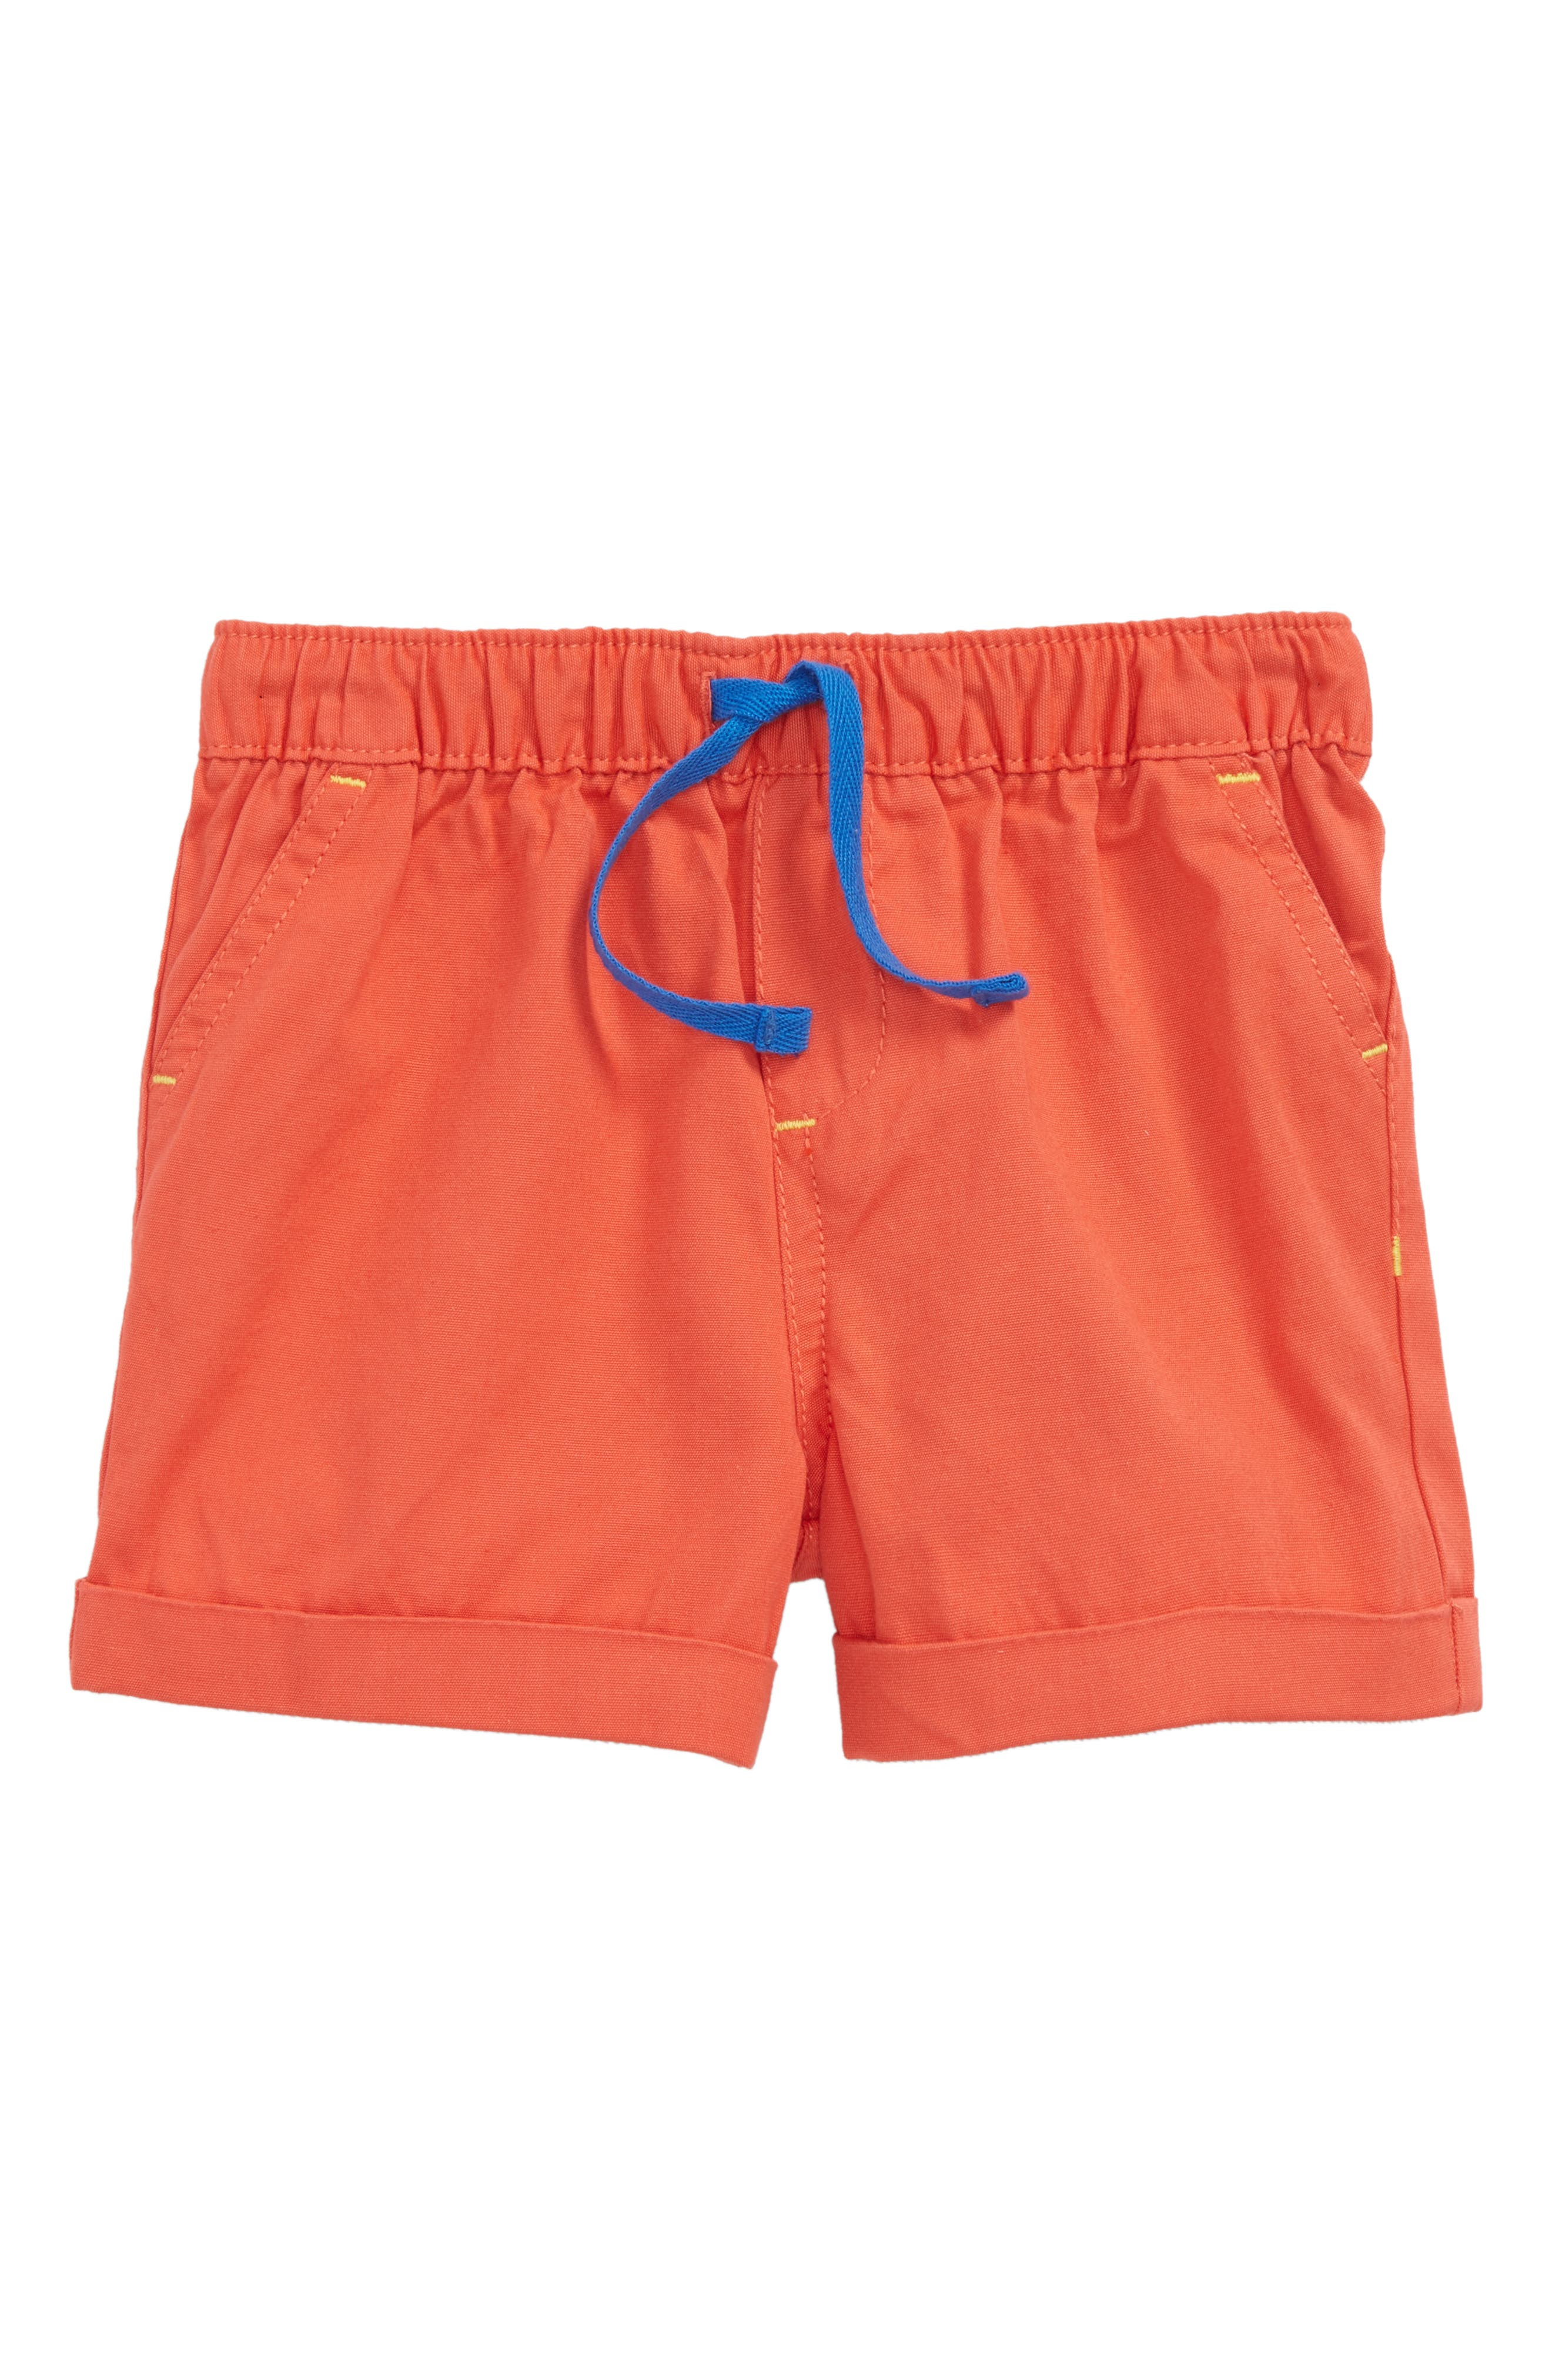 Explorer Shorts,                         Main,                         color, 614